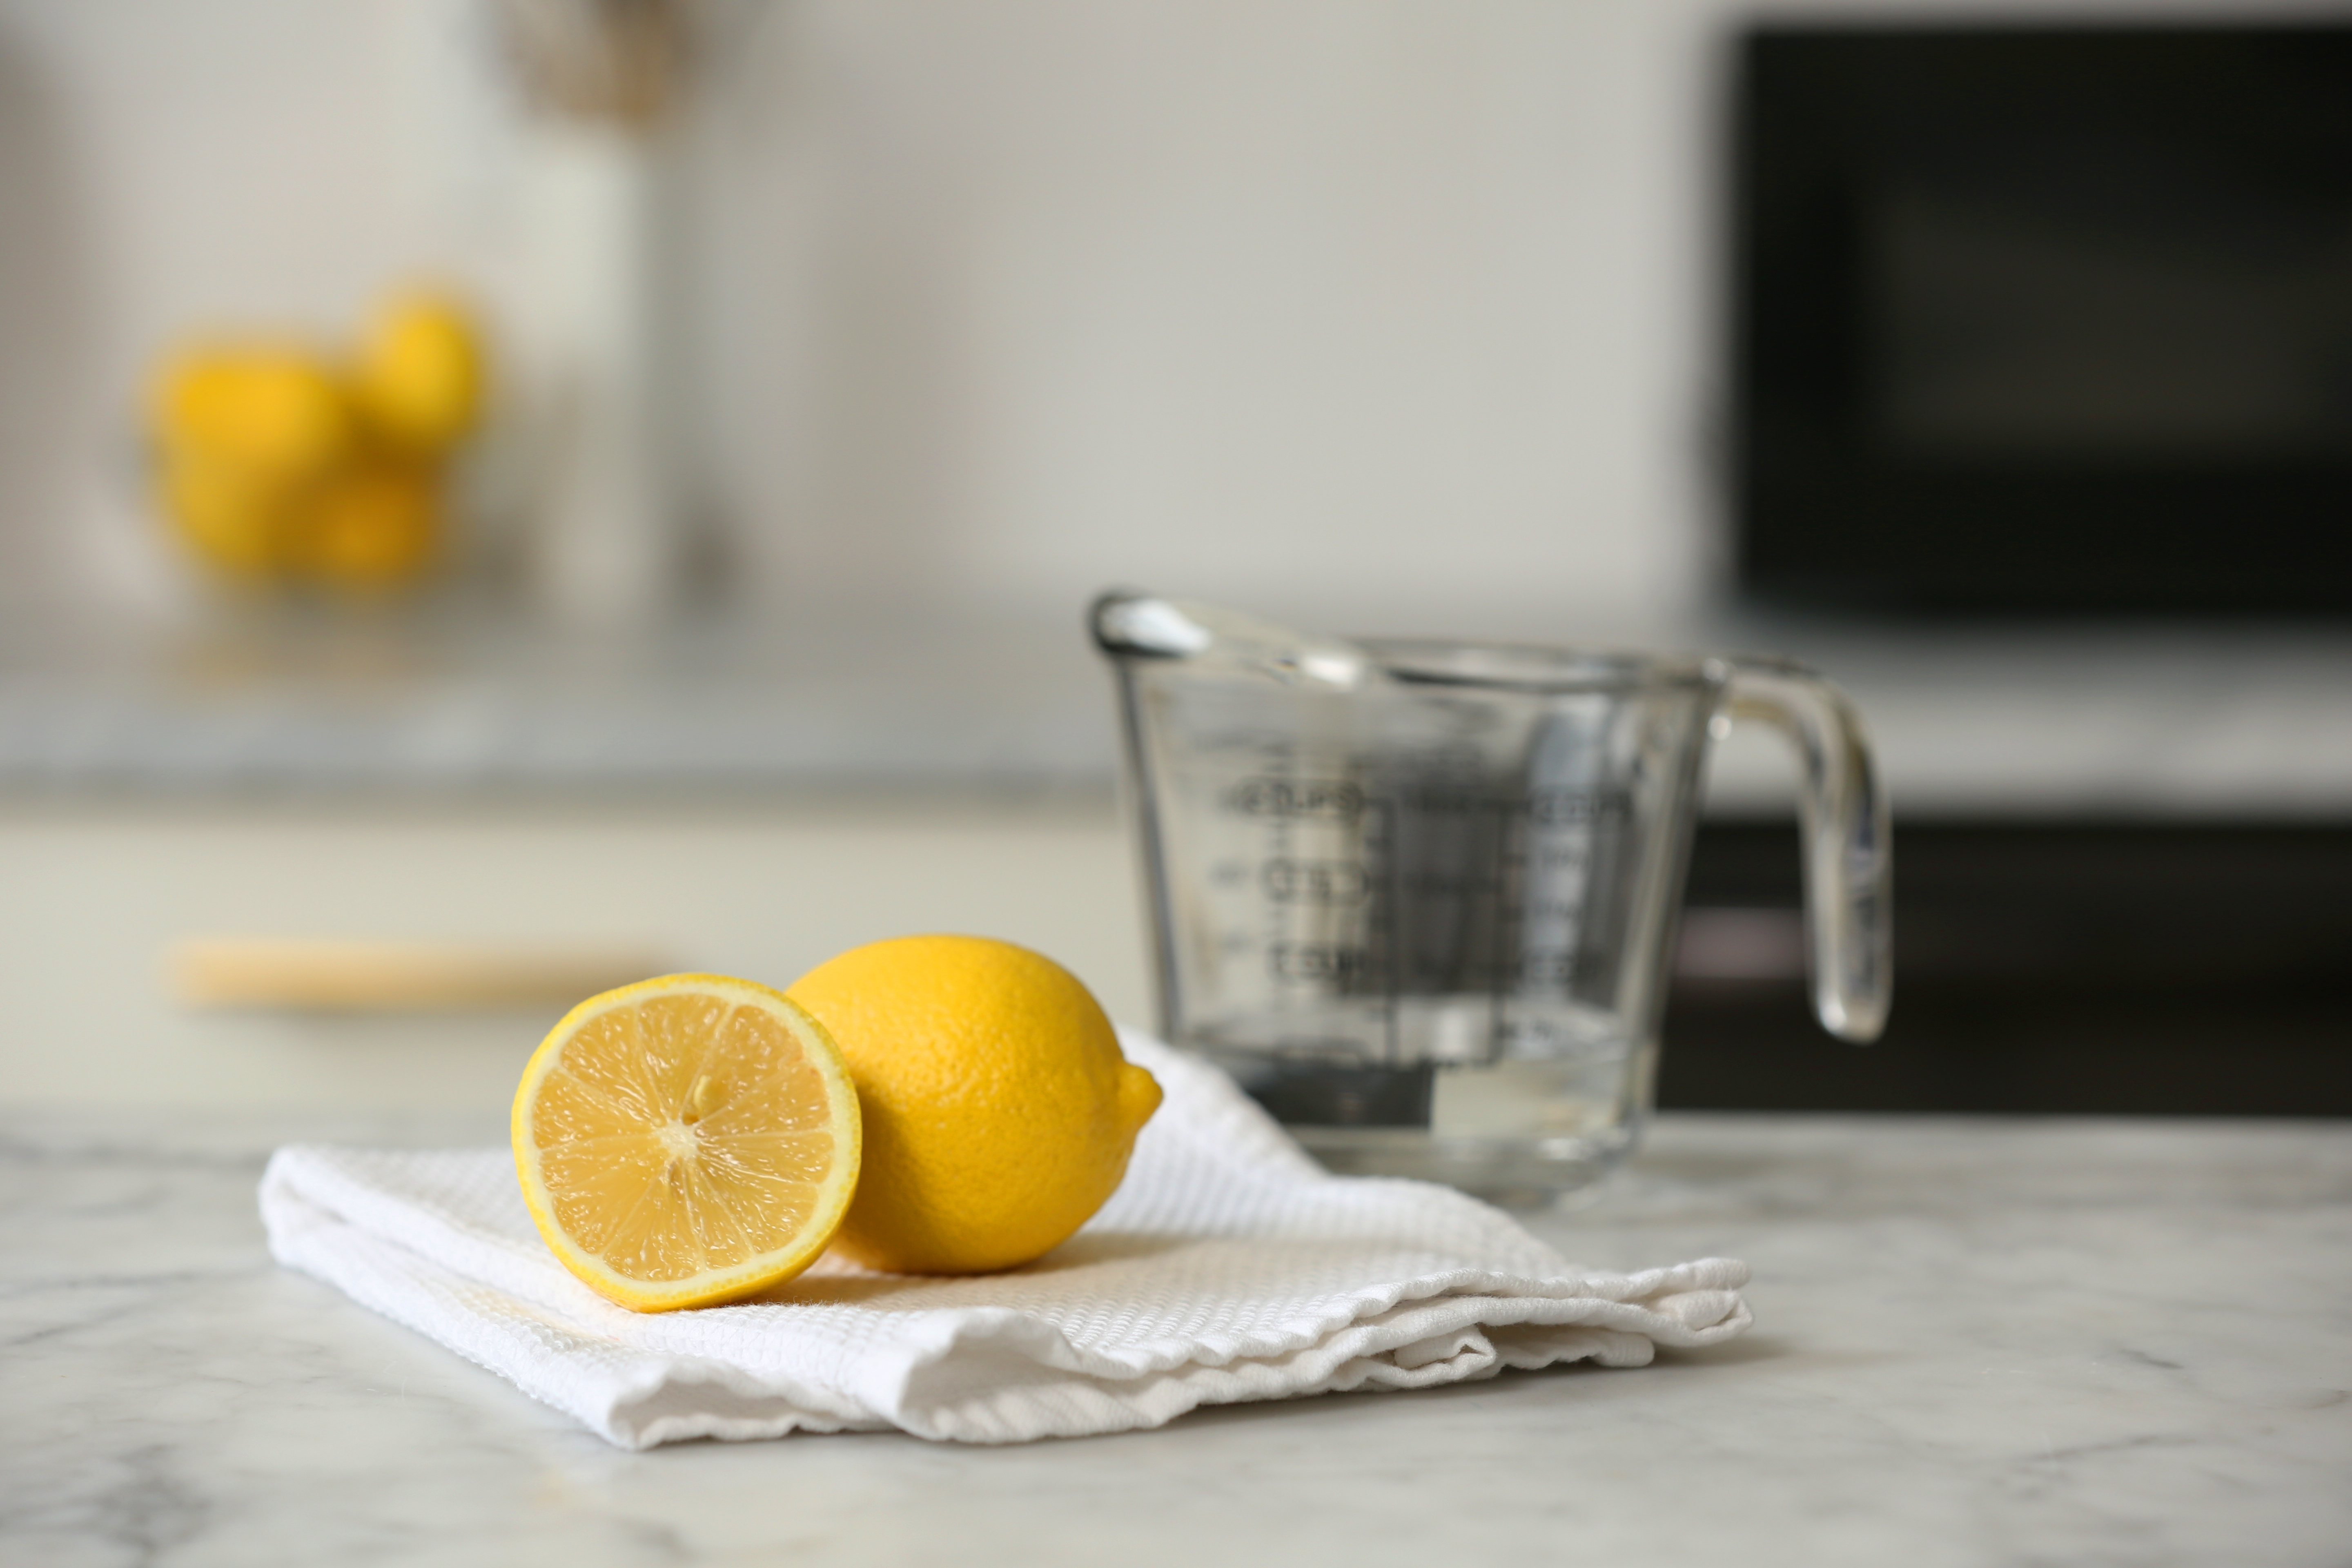 How To Clean Microwave Naturally Lemon Kitchn